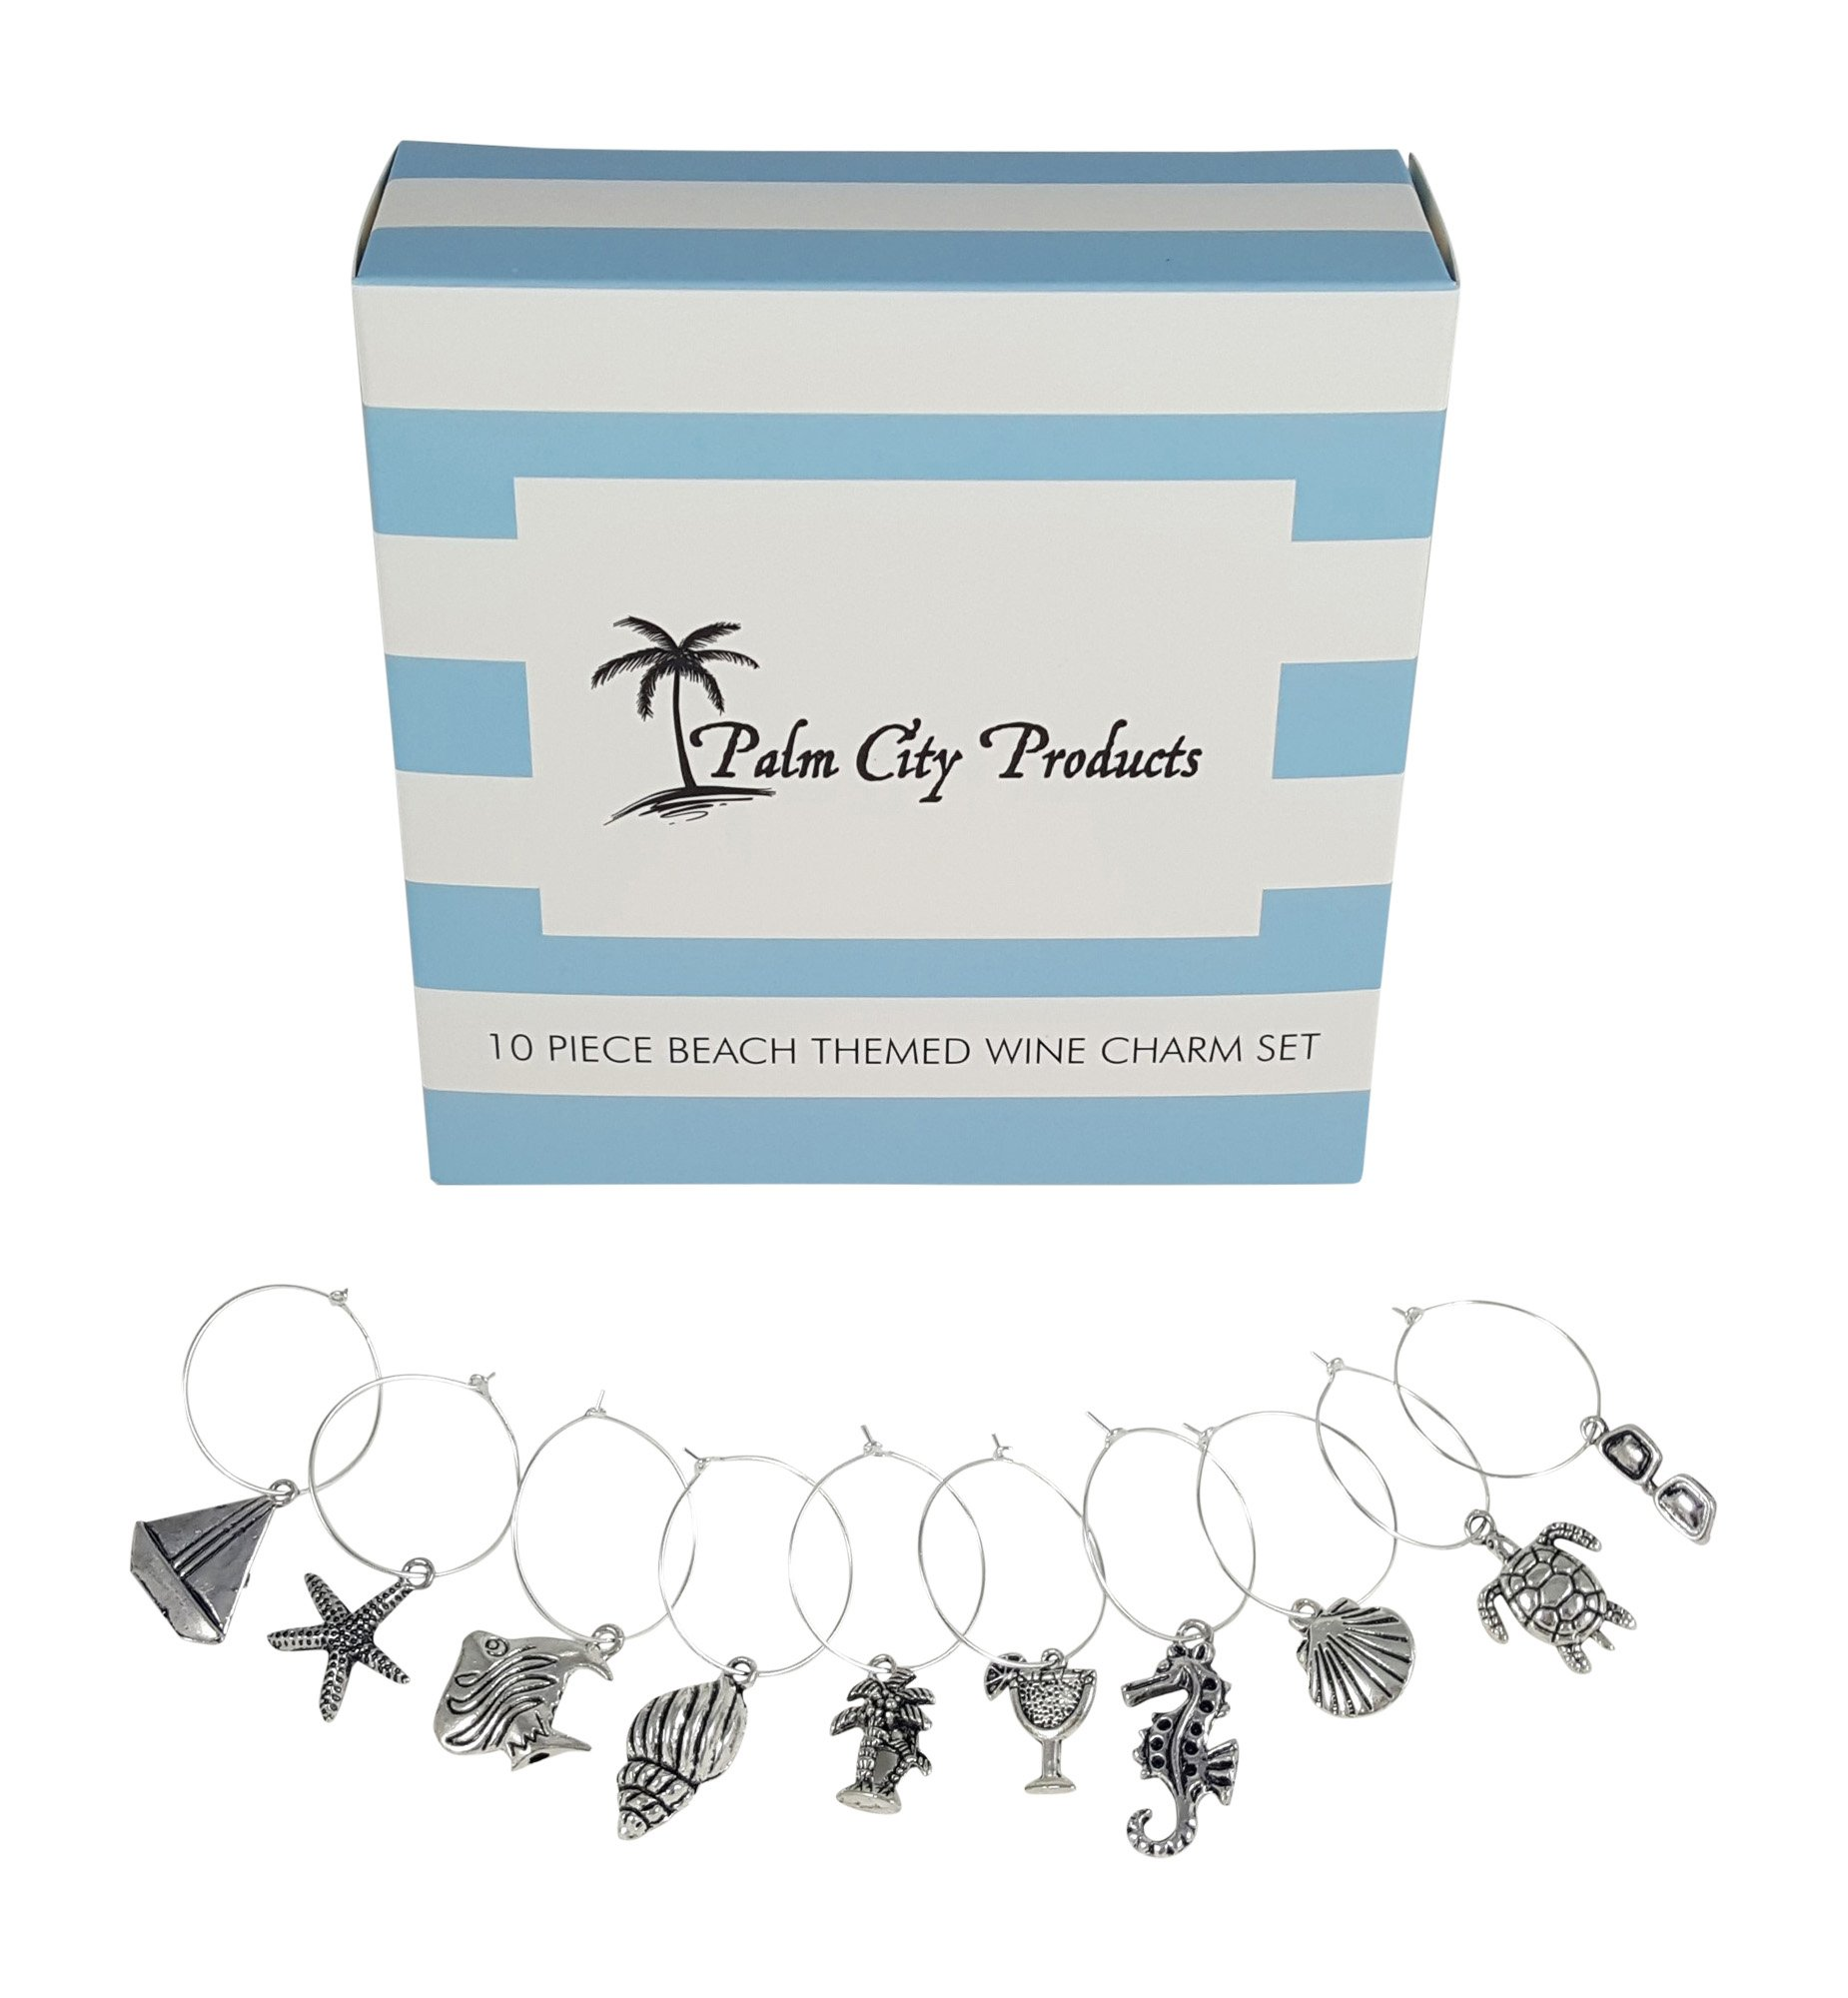 Palm City Products 10 Piece Beach Themed Wine Charm Set by Palm City Products